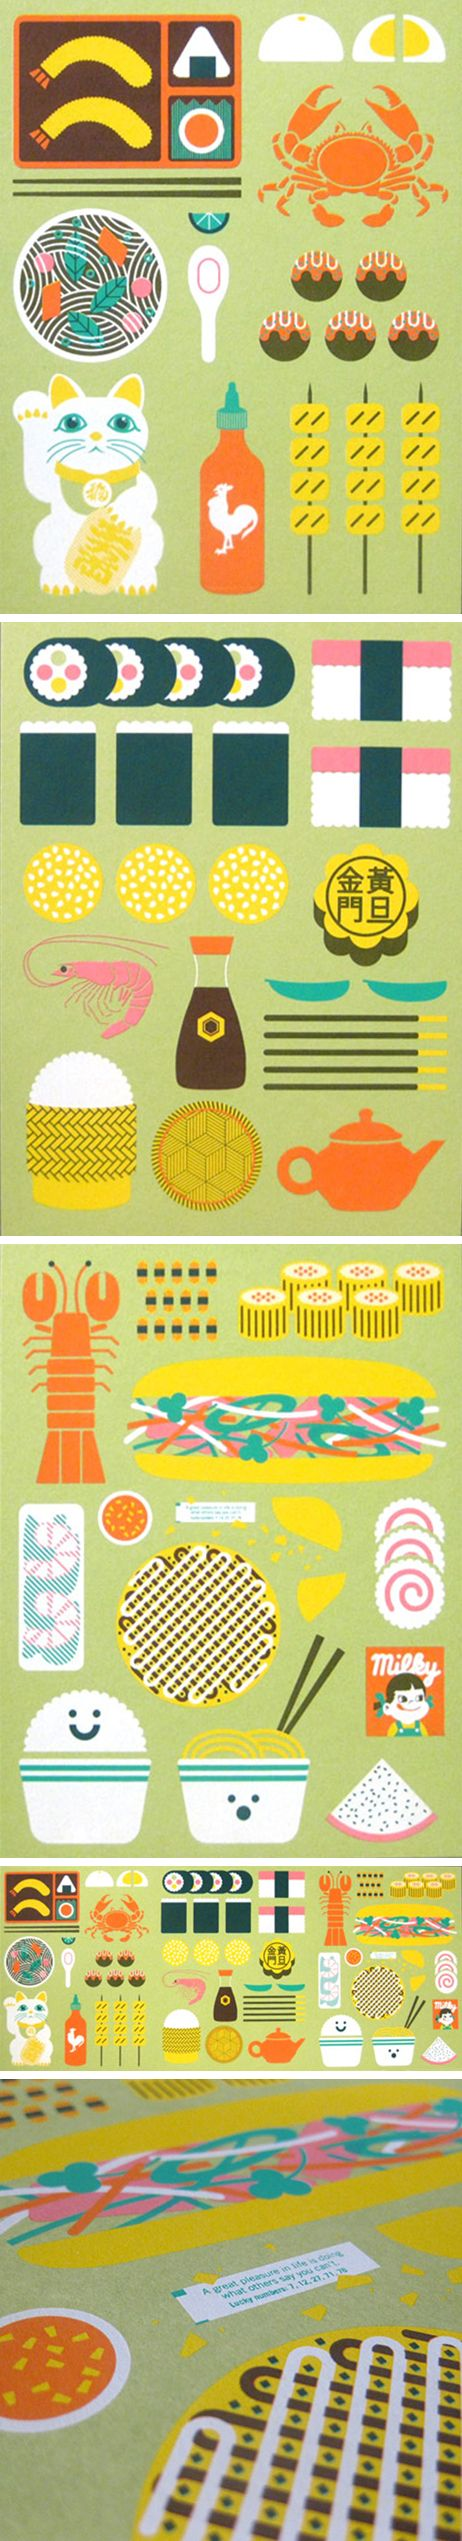 Asian food illustrations by Mike Davis